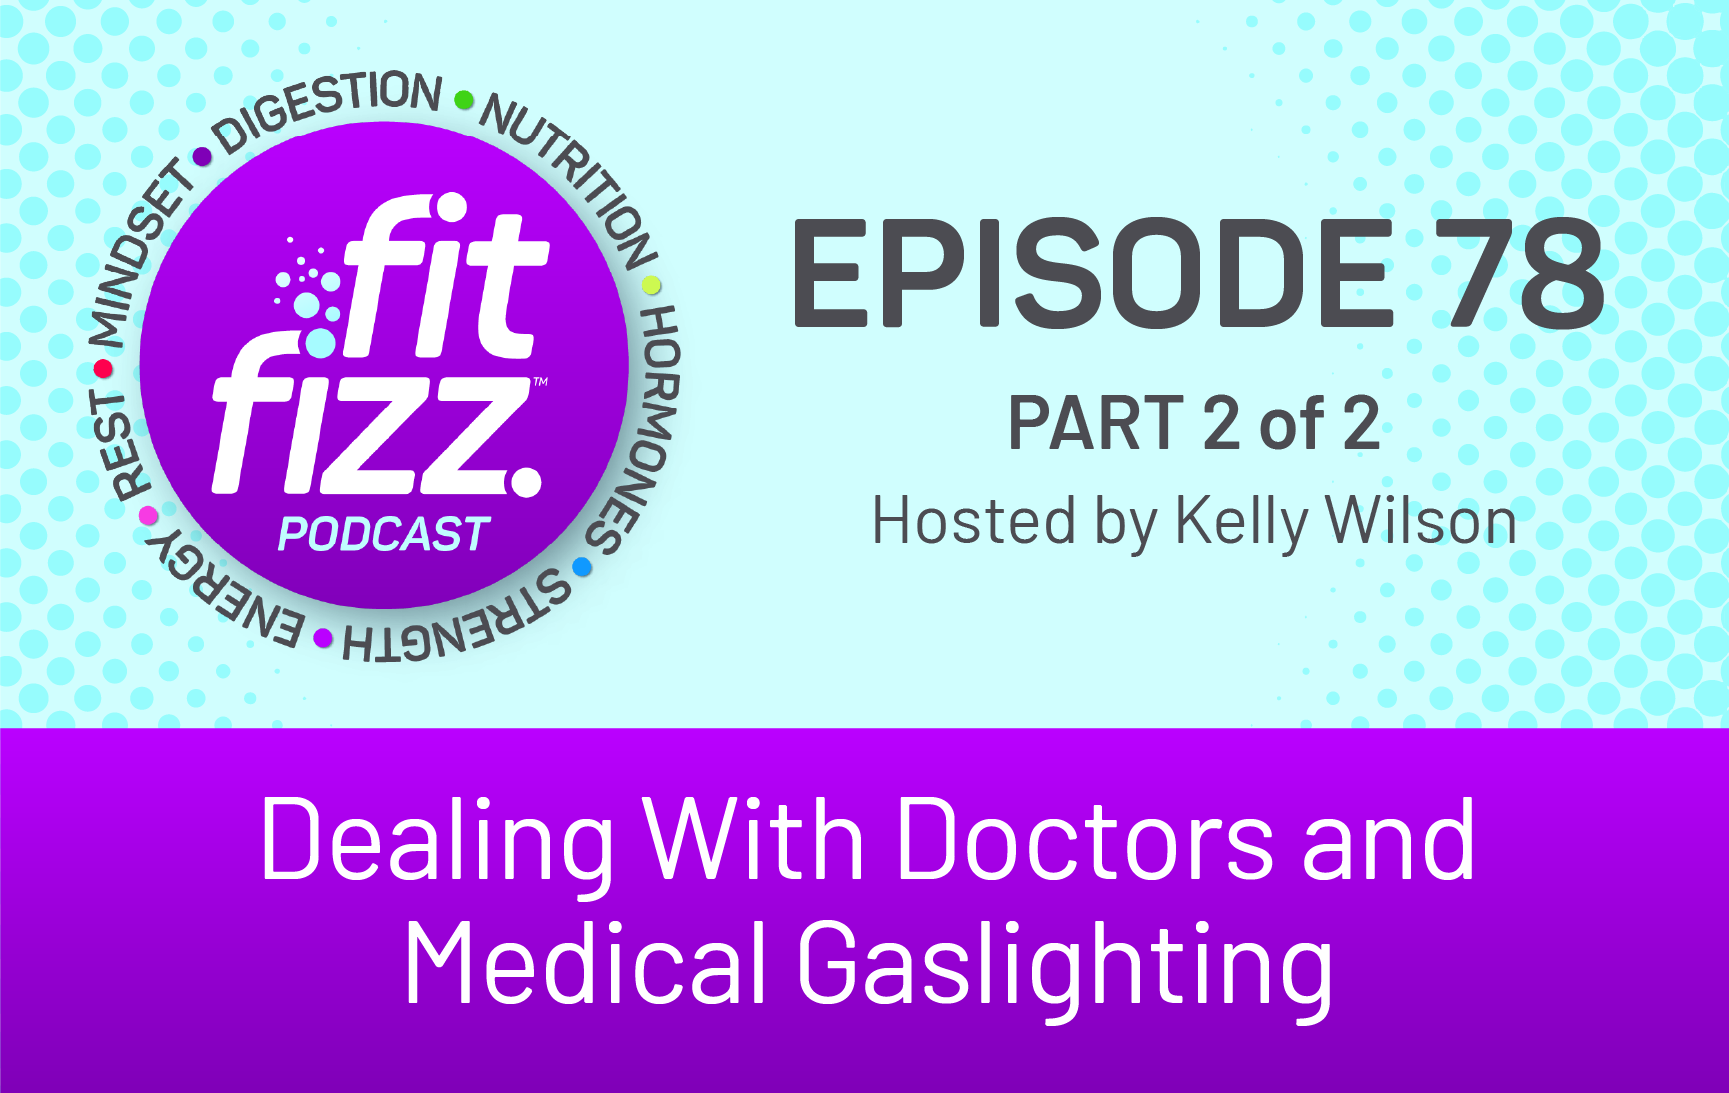 Ep. 78: Dealing With Doctors and Medical Gaslighting (Part 2 of 2)